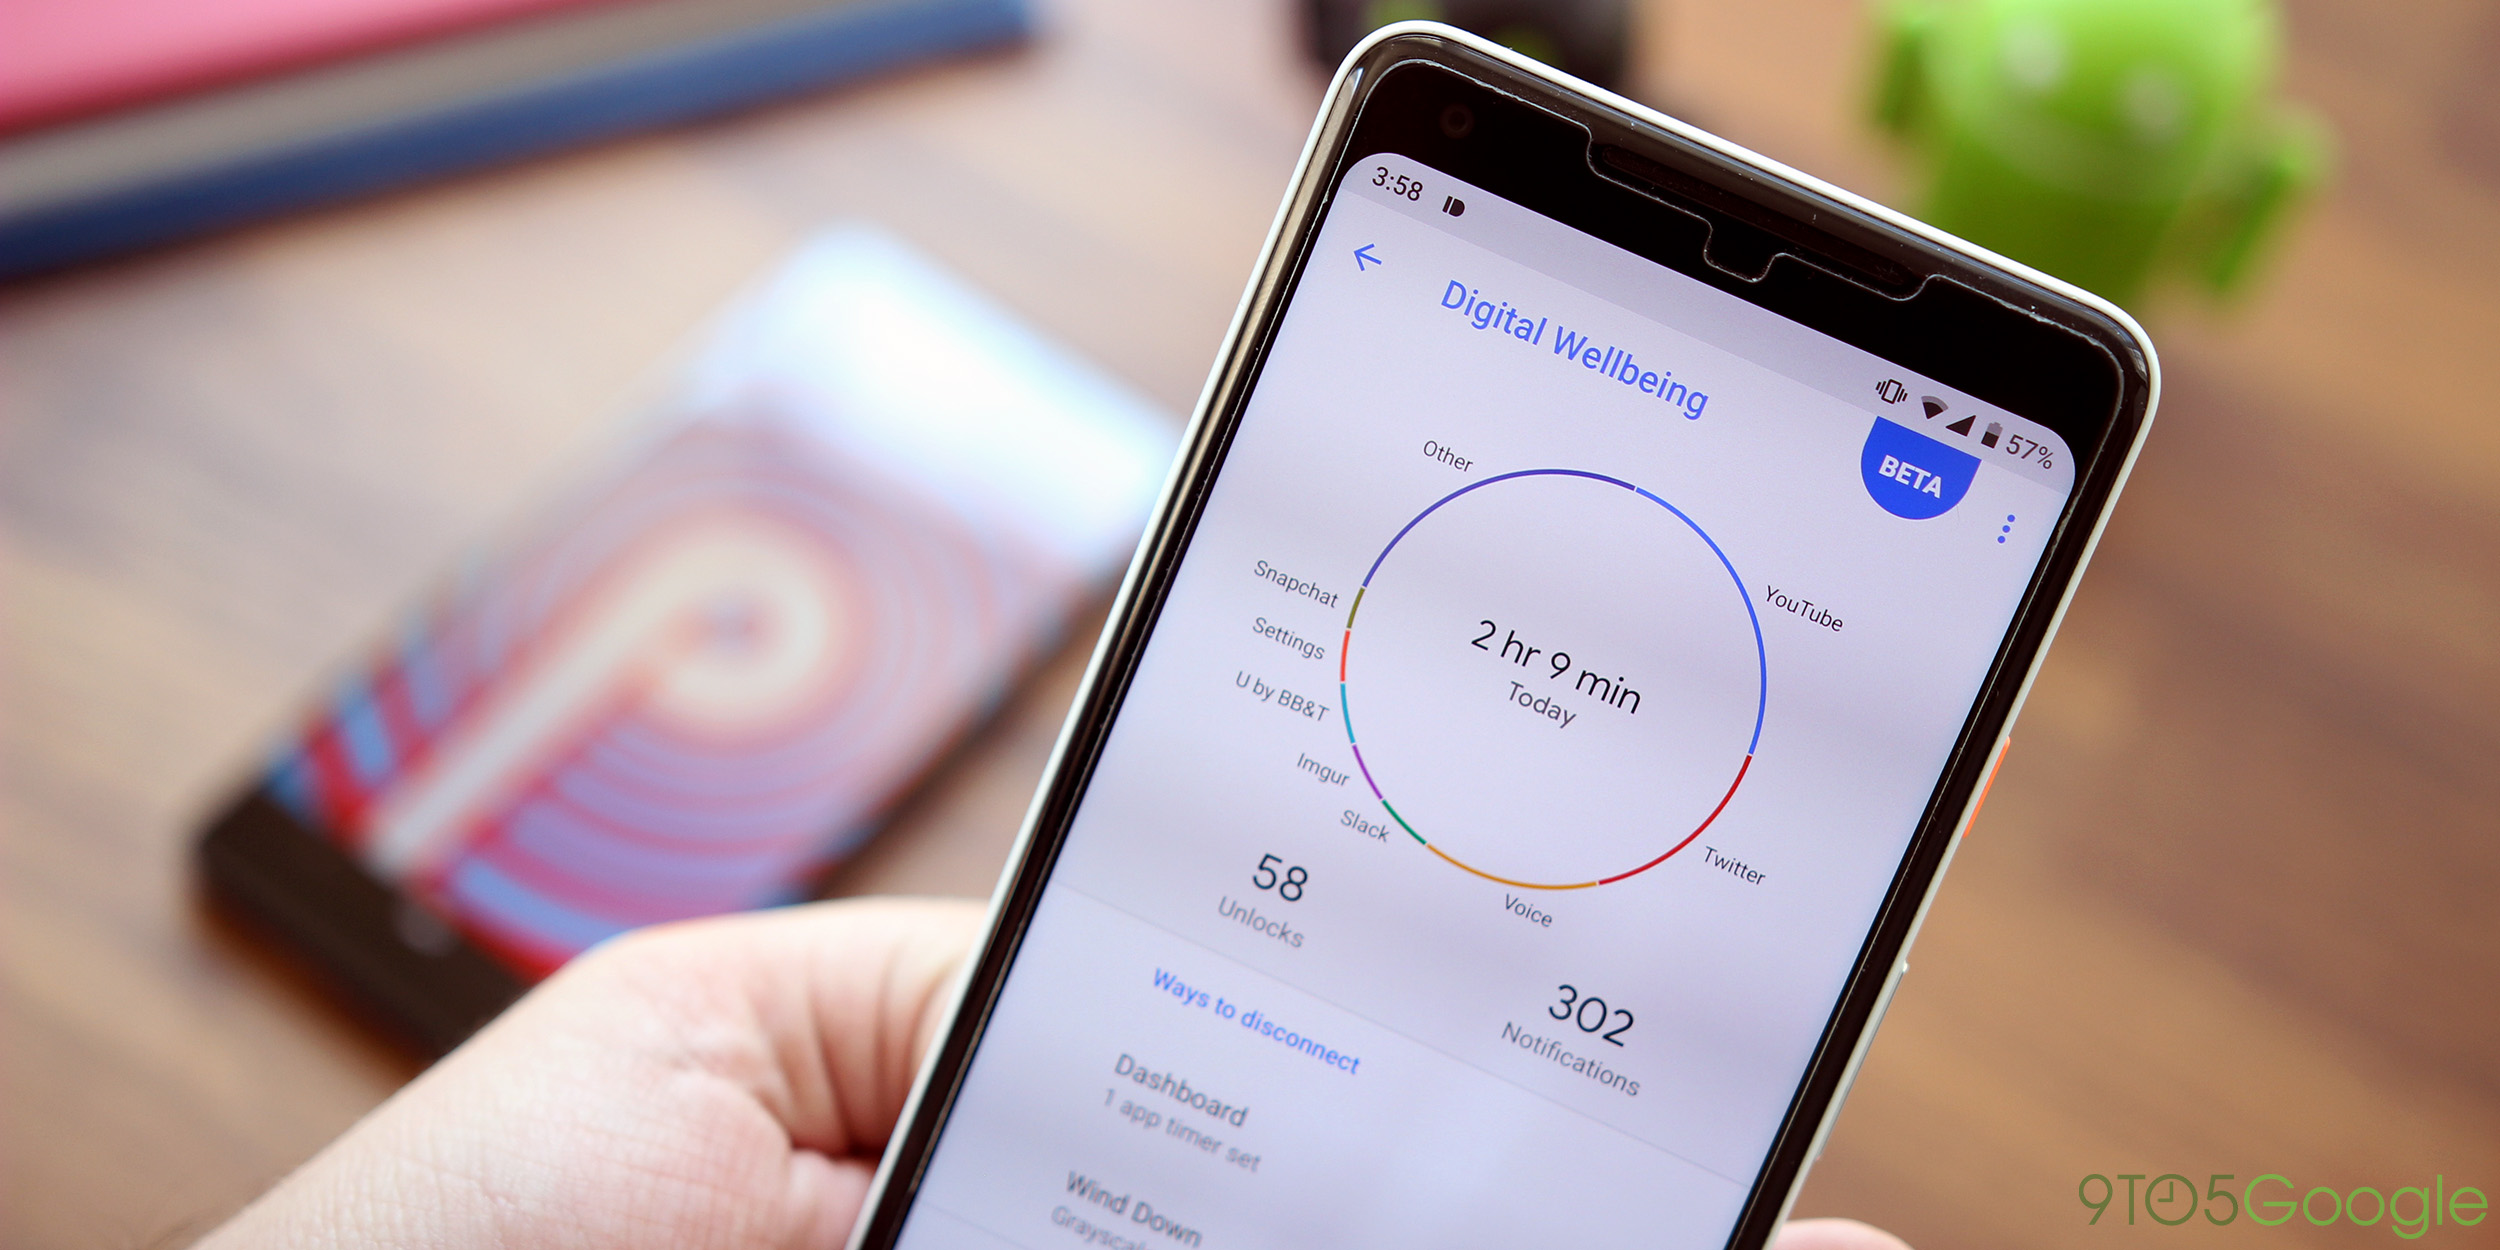 nokia 7 plus is the first non pixel device to get google s digital wellbeing feature on android 9 pie